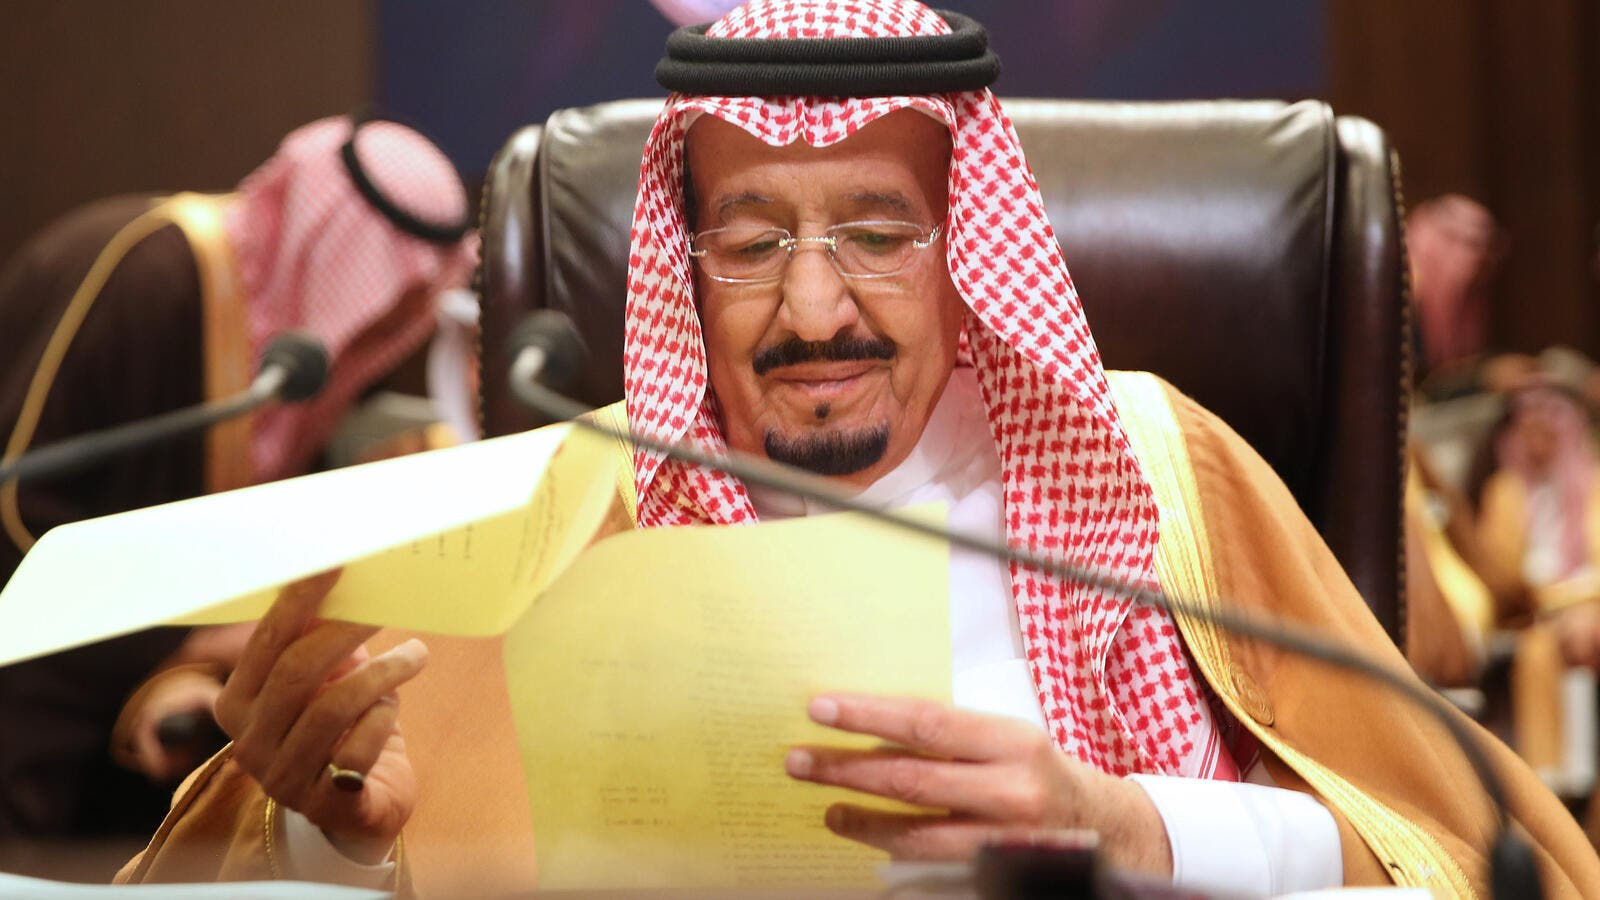 Saudi Arabia's King Salman bin Abdulaziz has ordered the suspension of a columnist after praise from the overzealous journalist appeared to go too far. (AFP)